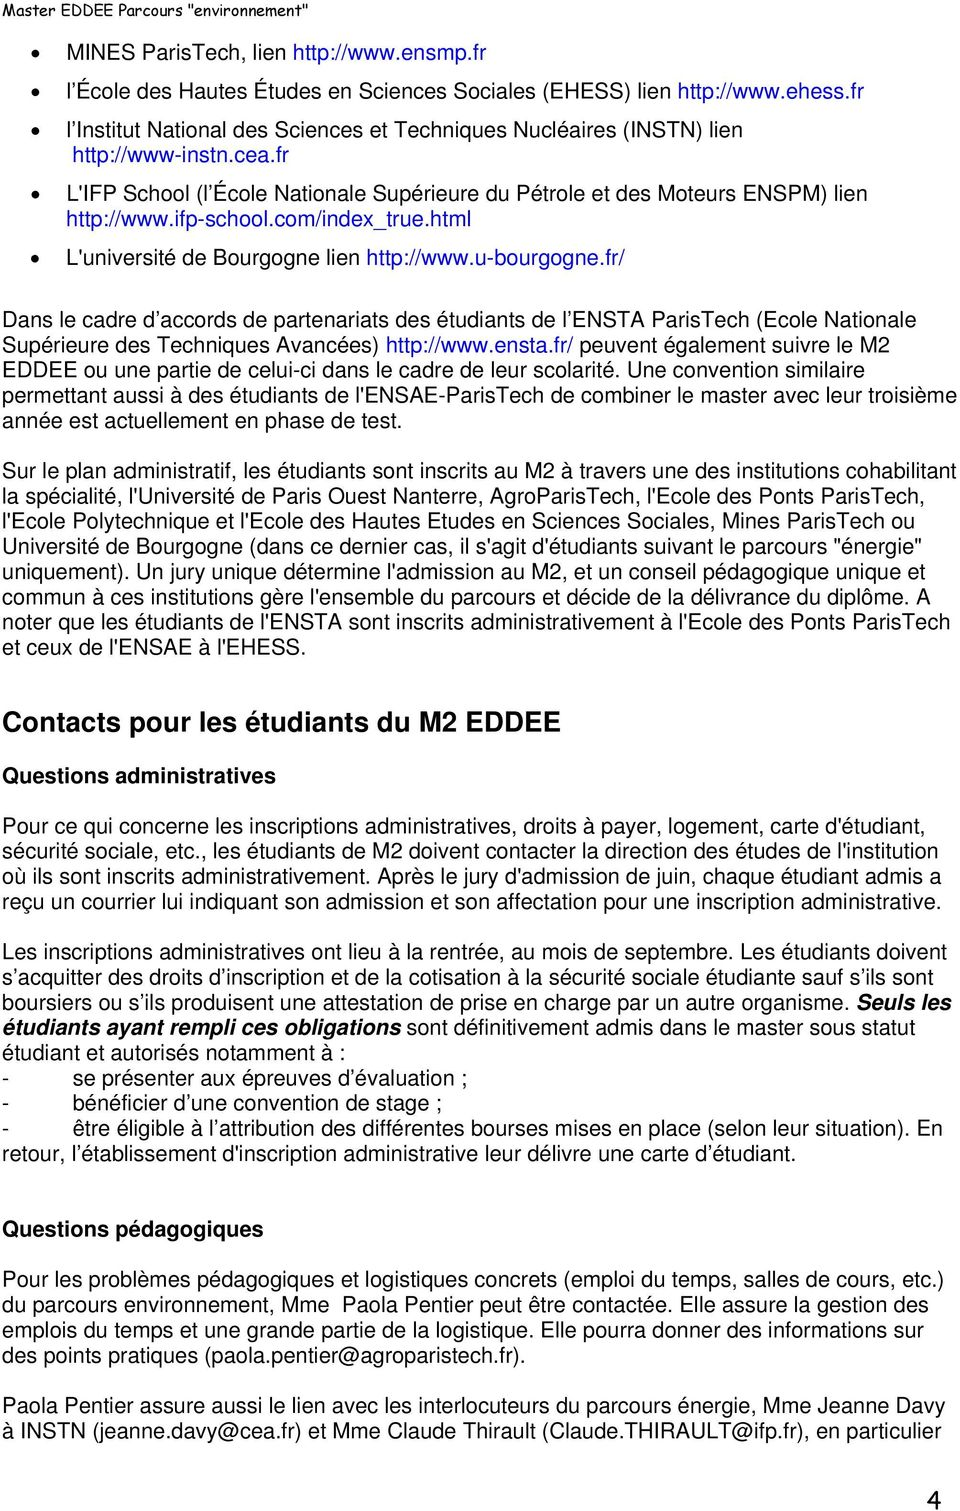 ifp-school.com/index_true.html L'université de Bourgogne lien http://www.u-bourgogne.